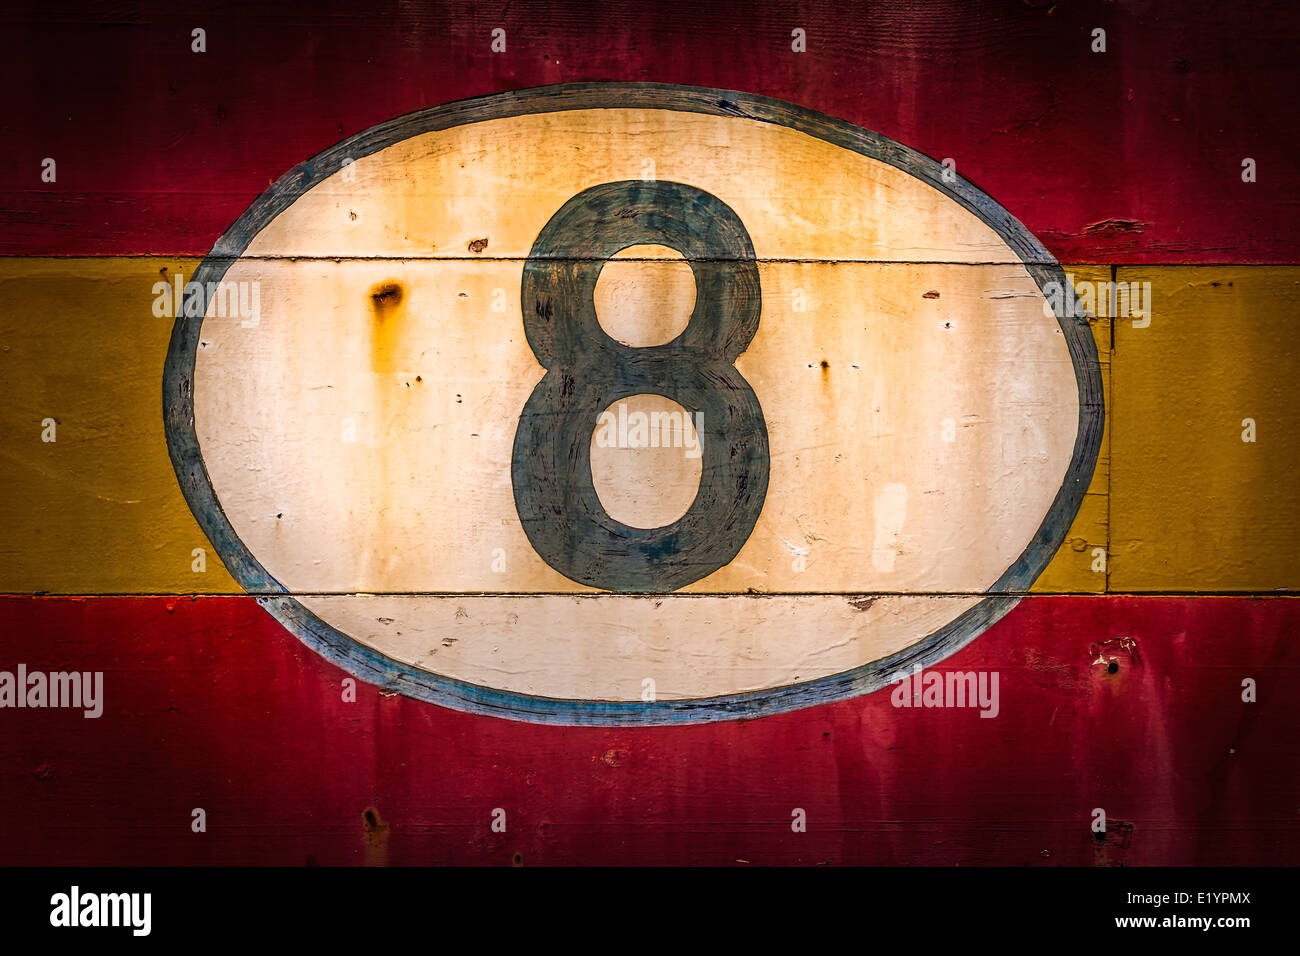 Old painted signs with numerals. Number 8 from a series. - Stock Image